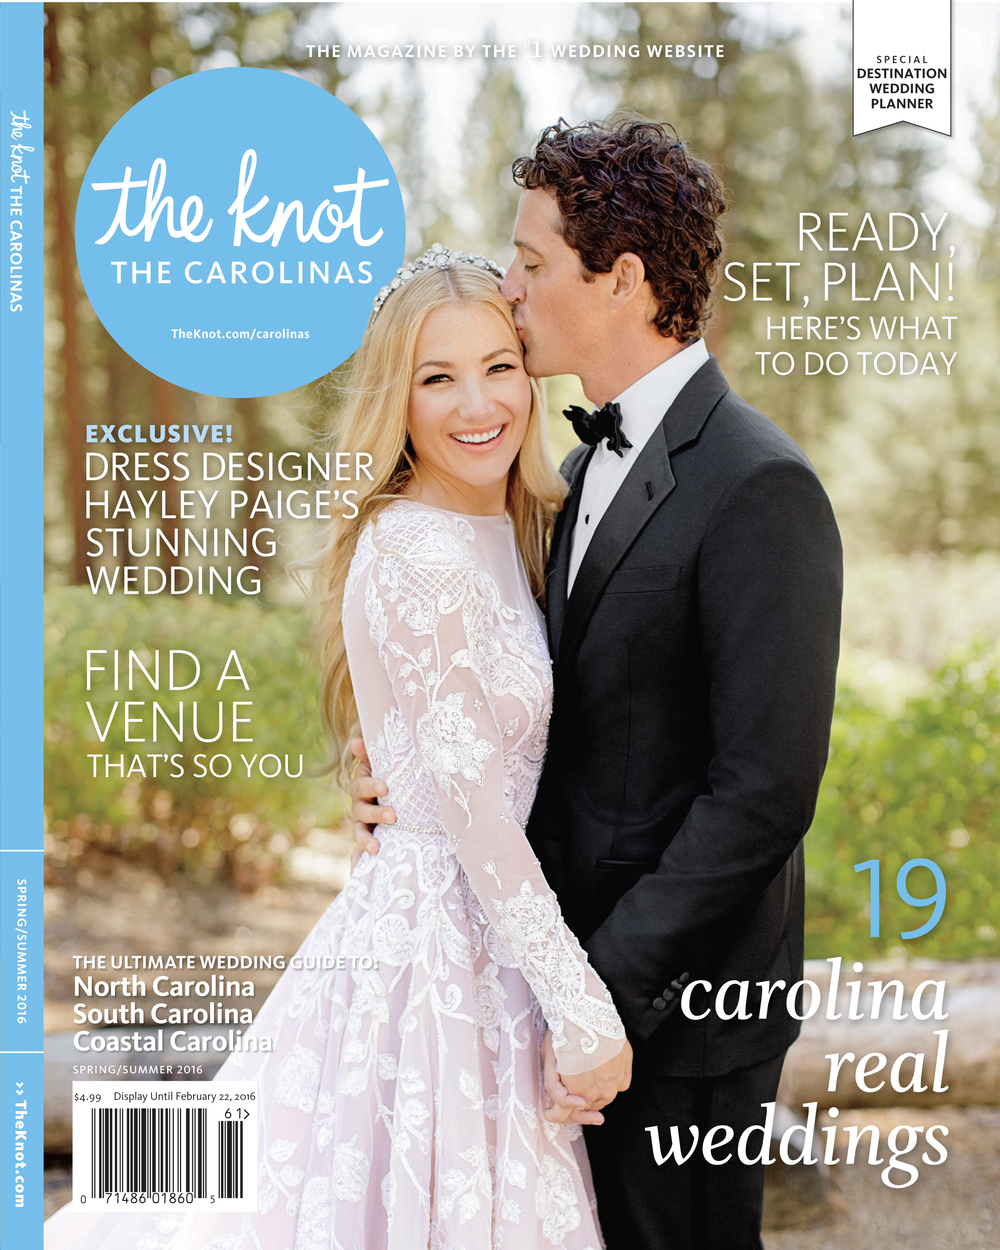 The Knot Carolinas SS16 Cover2.jpg